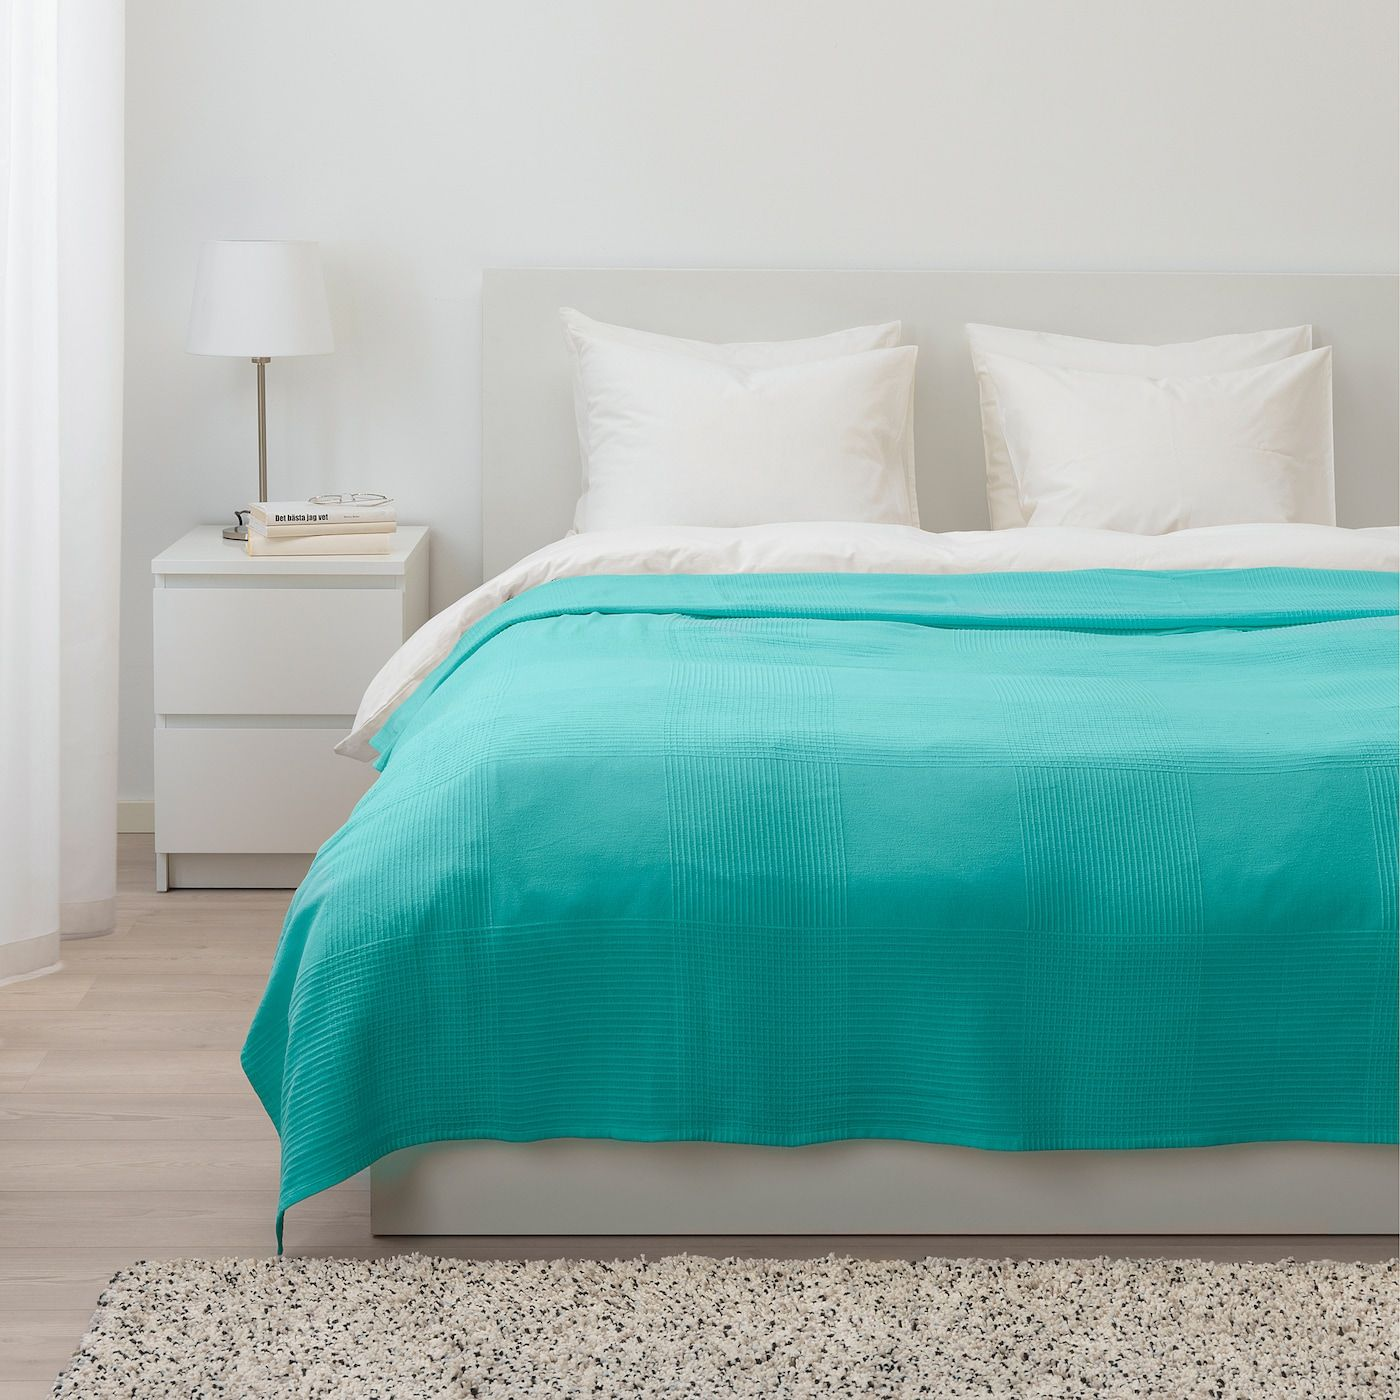 Indira Bedspread Turquoise 91x98